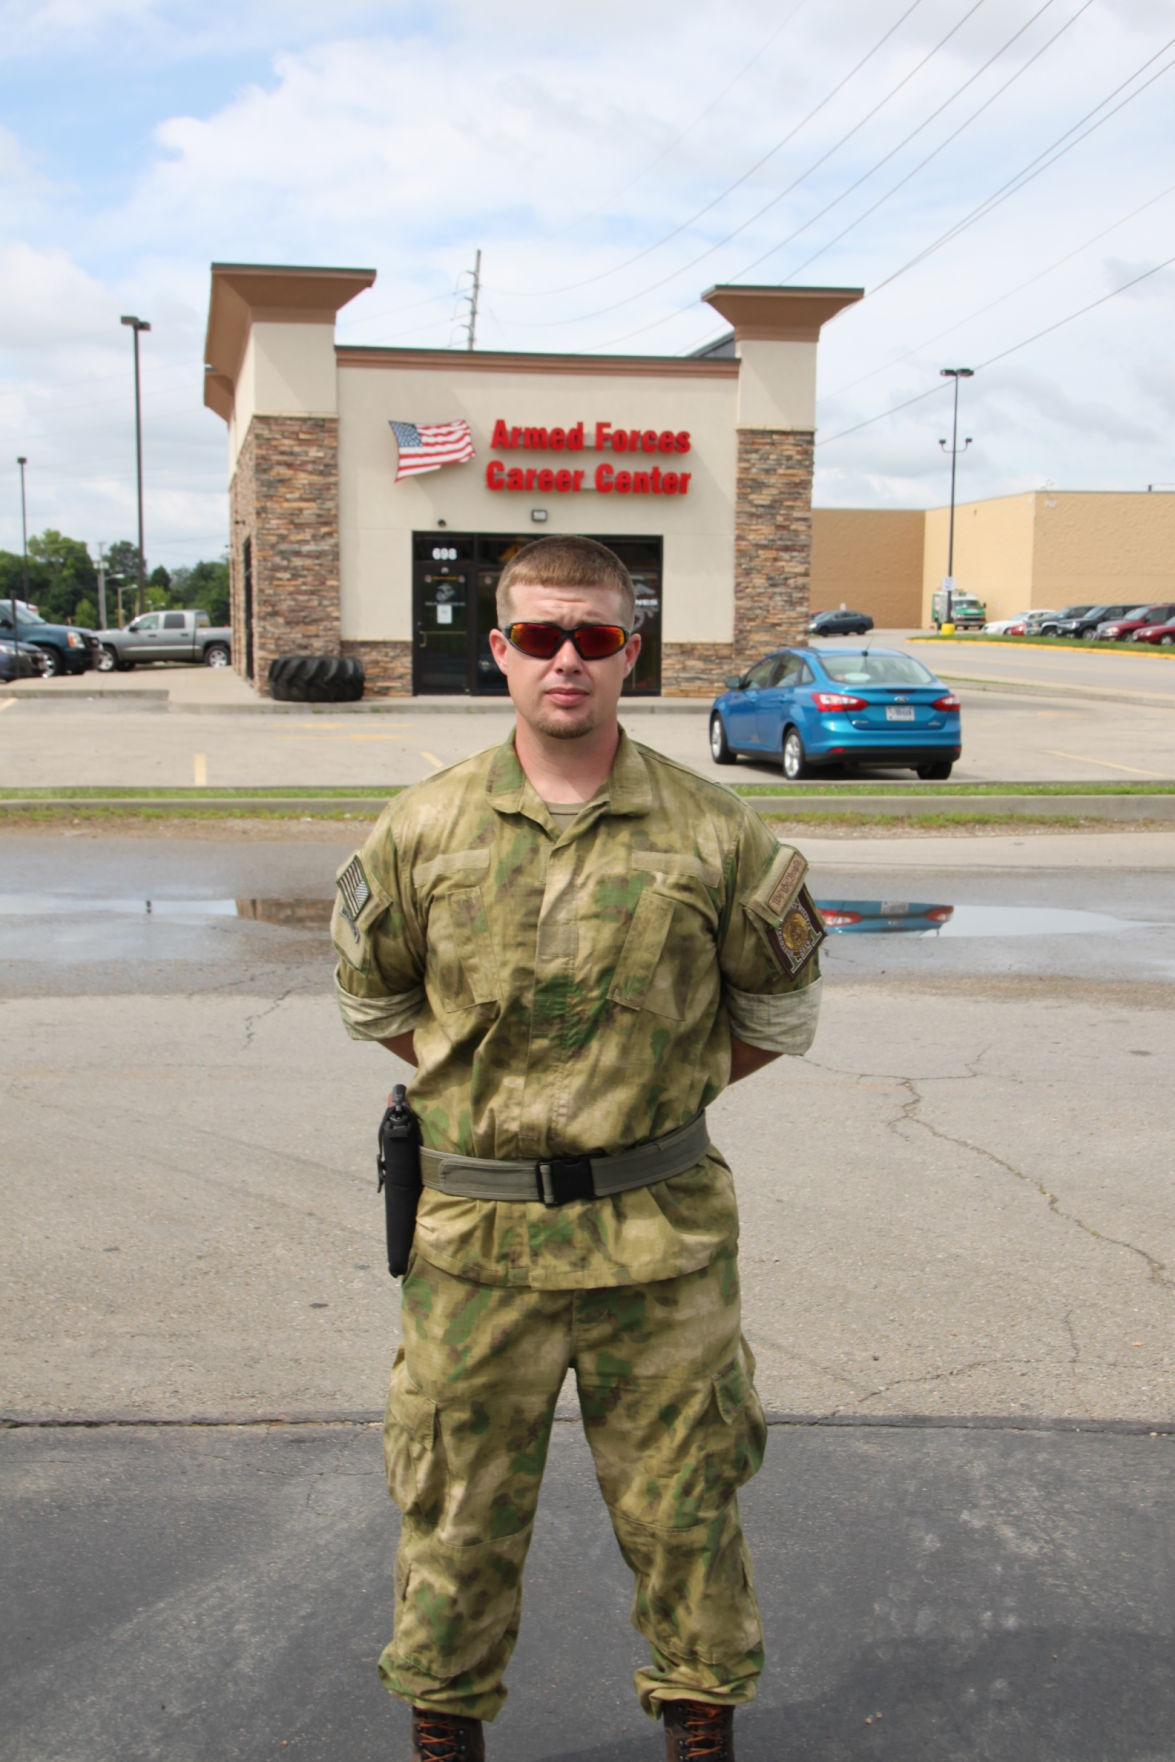 UPDATED: Oath Keepers and militia 'guarding' local Armed Forces Career  Center